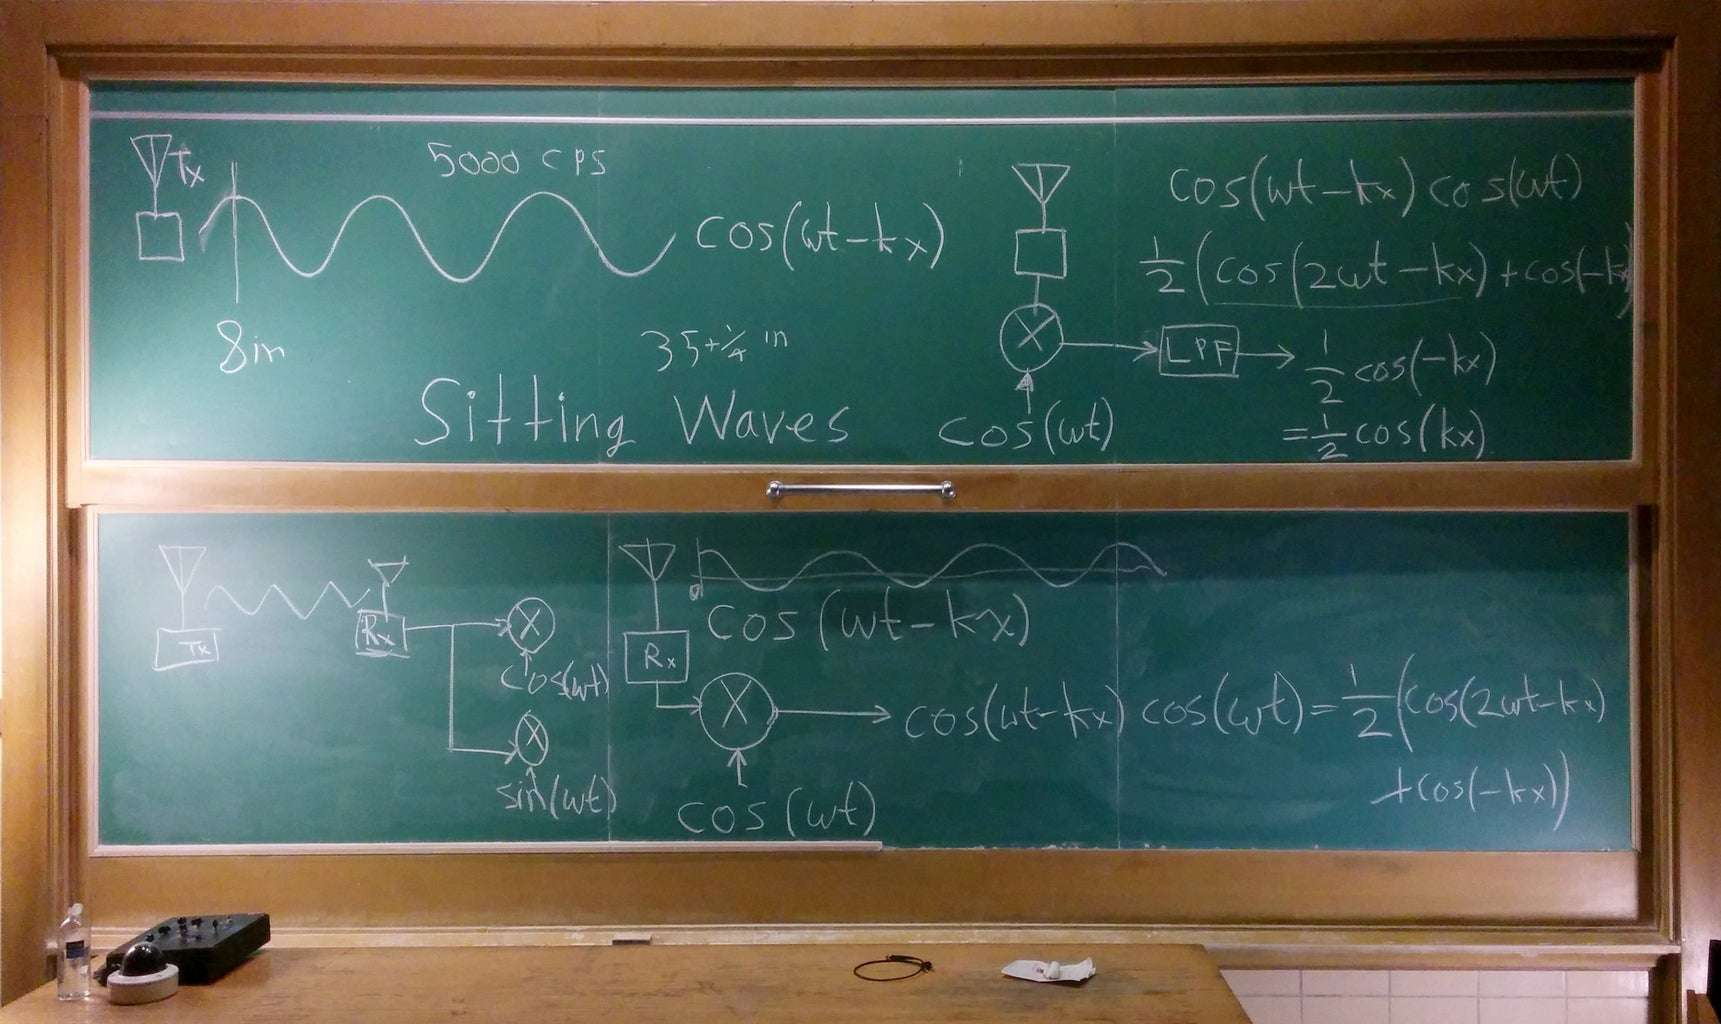 """Measure the Speed of Sound (or Speed of Light, or Speed of Gravitational Waves, Etc.), and Make the Waves """"sit"""" Still"""